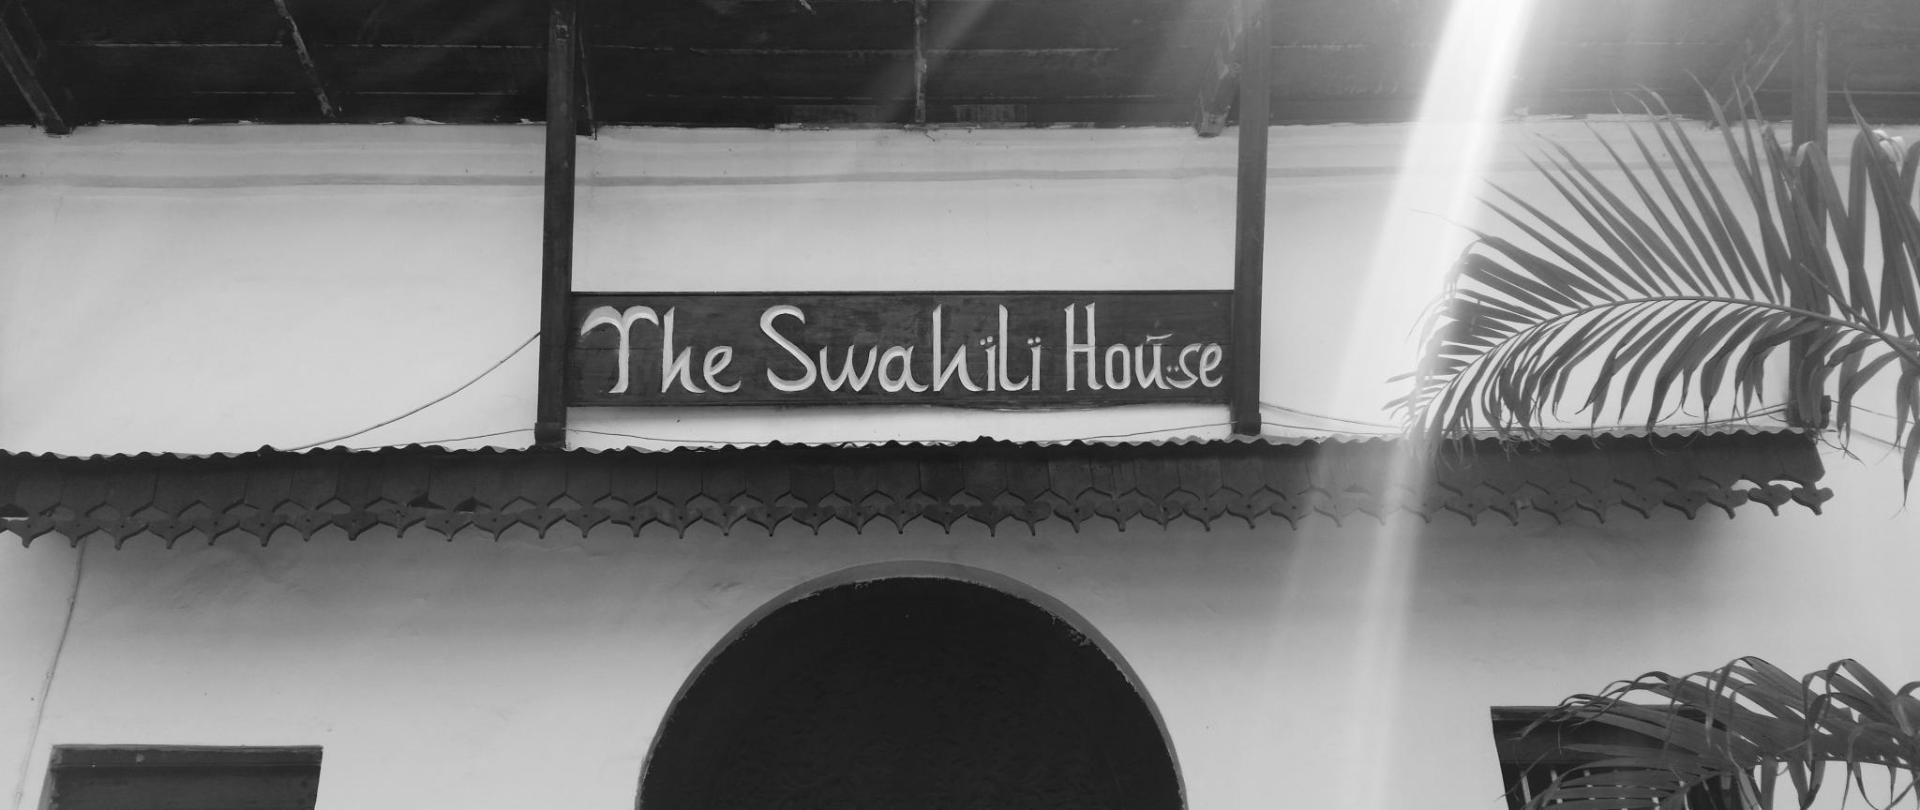 The Swahili House